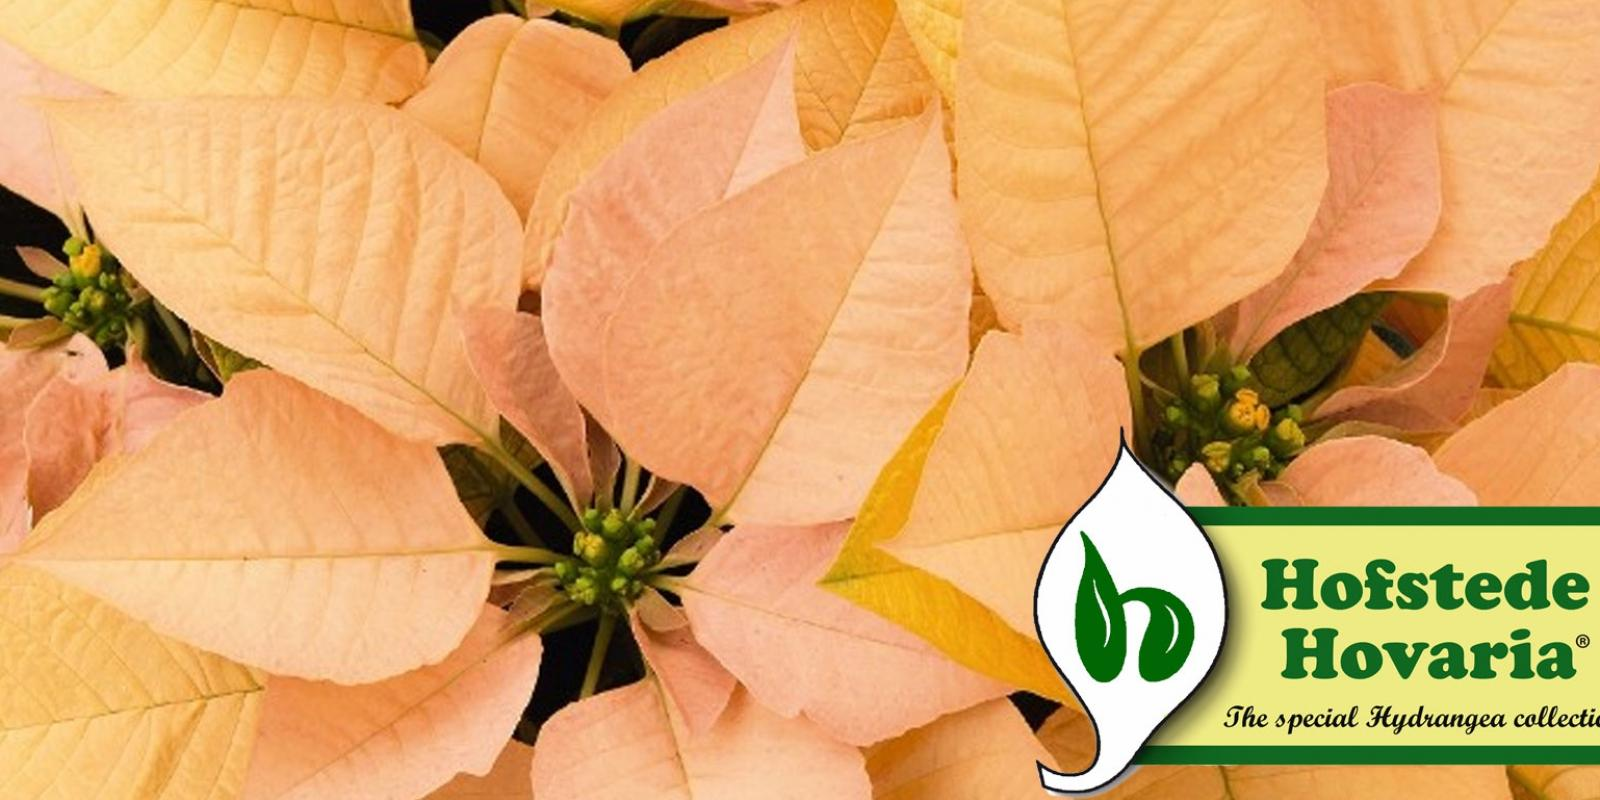 Our growers from Roobos wholesale for flowers and plants: Hofstede Hovaria